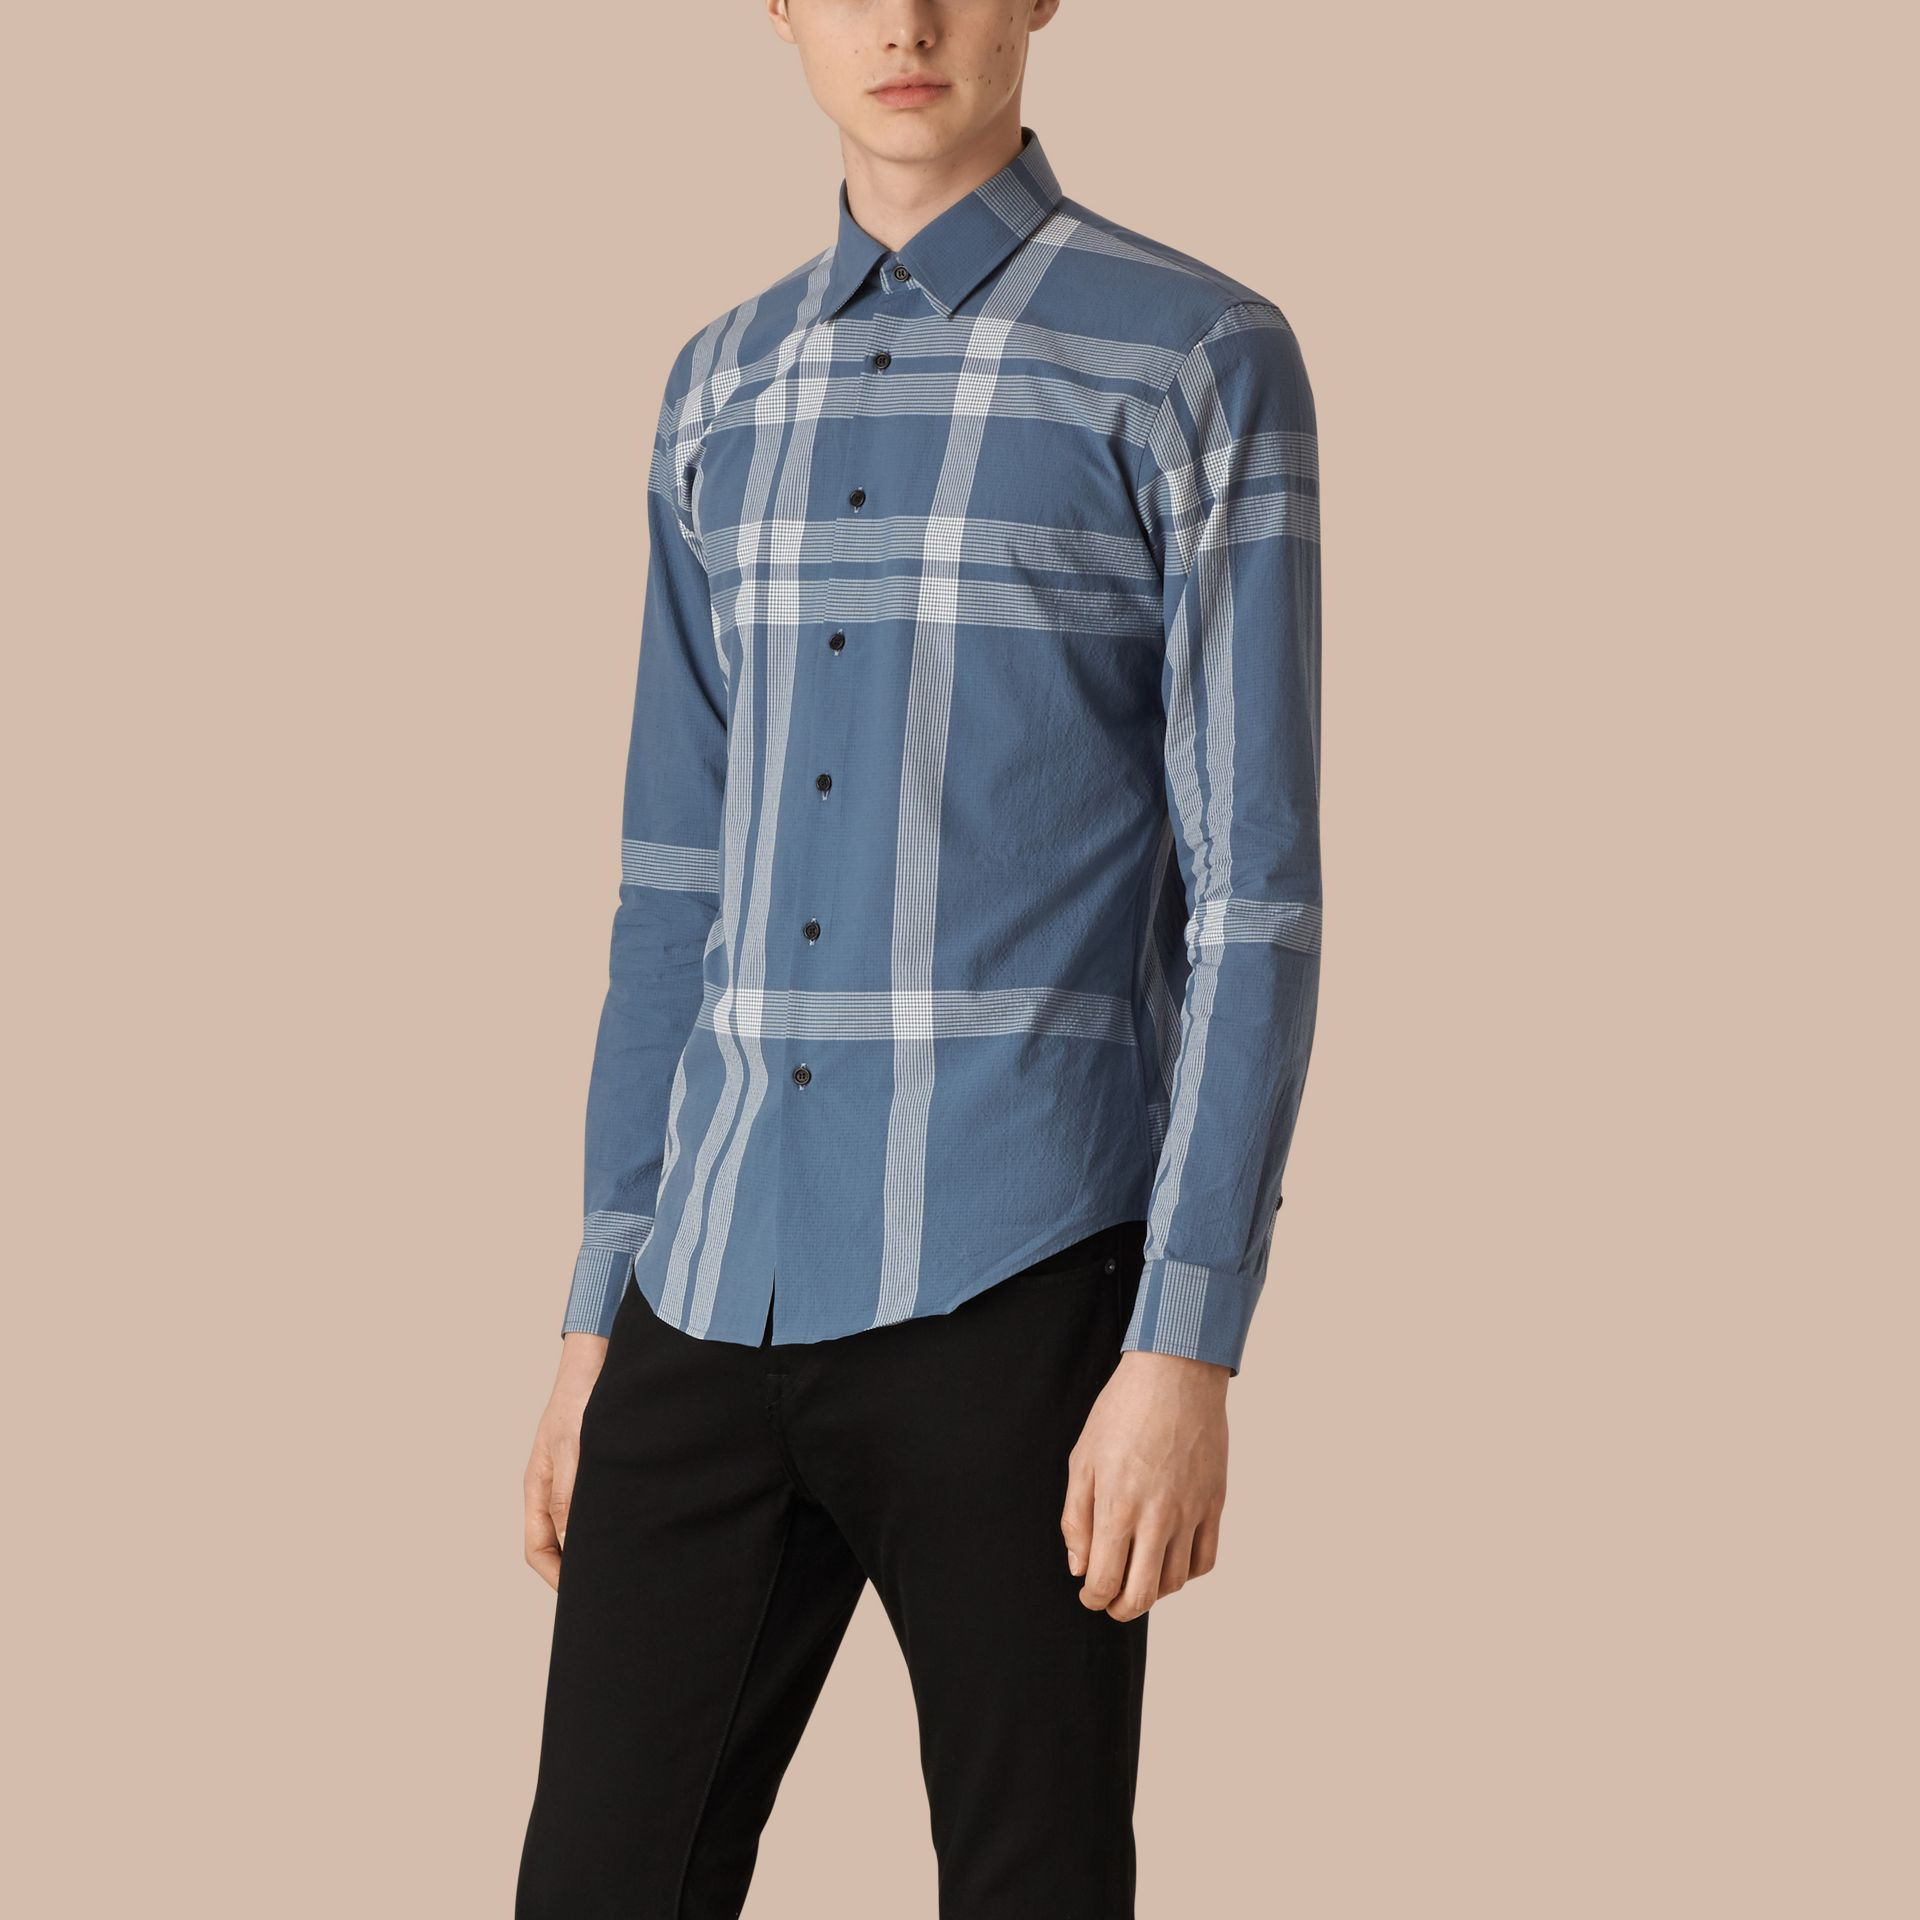 Lupine blue Textured Check Cotton Shirt Lupine Blue - gallery image 1